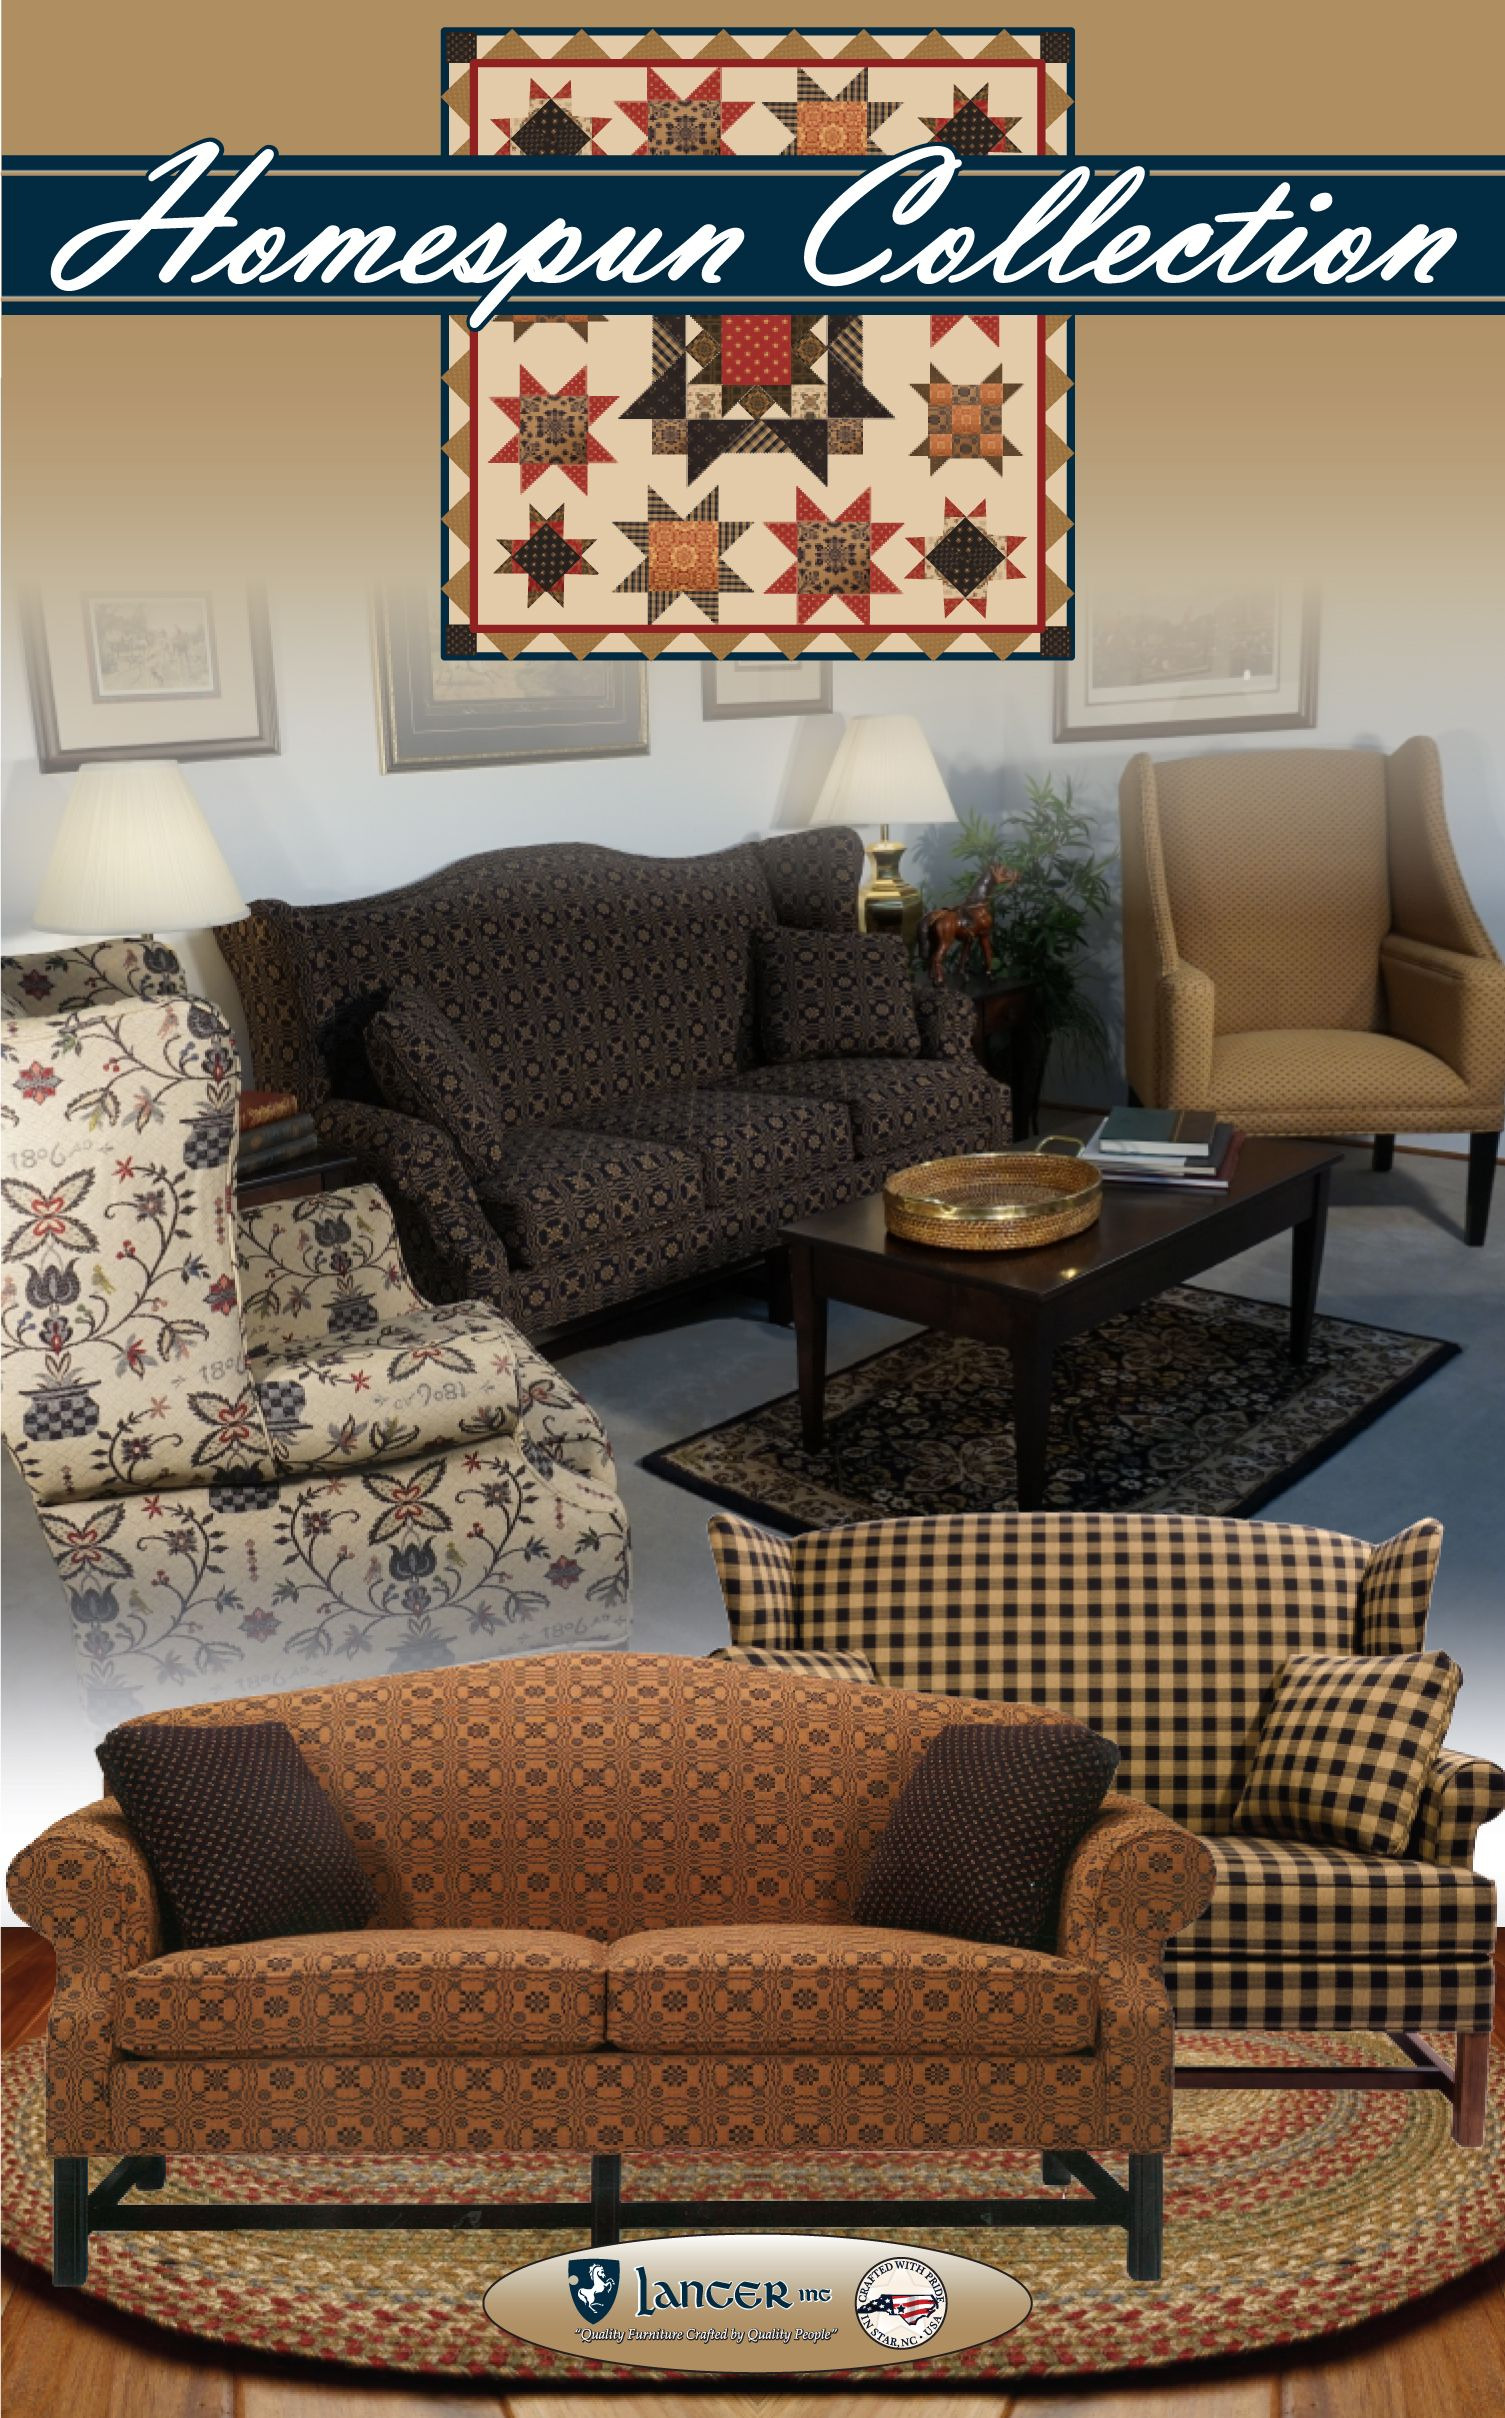 Carolina Country Furniture Crescent Series would look great in